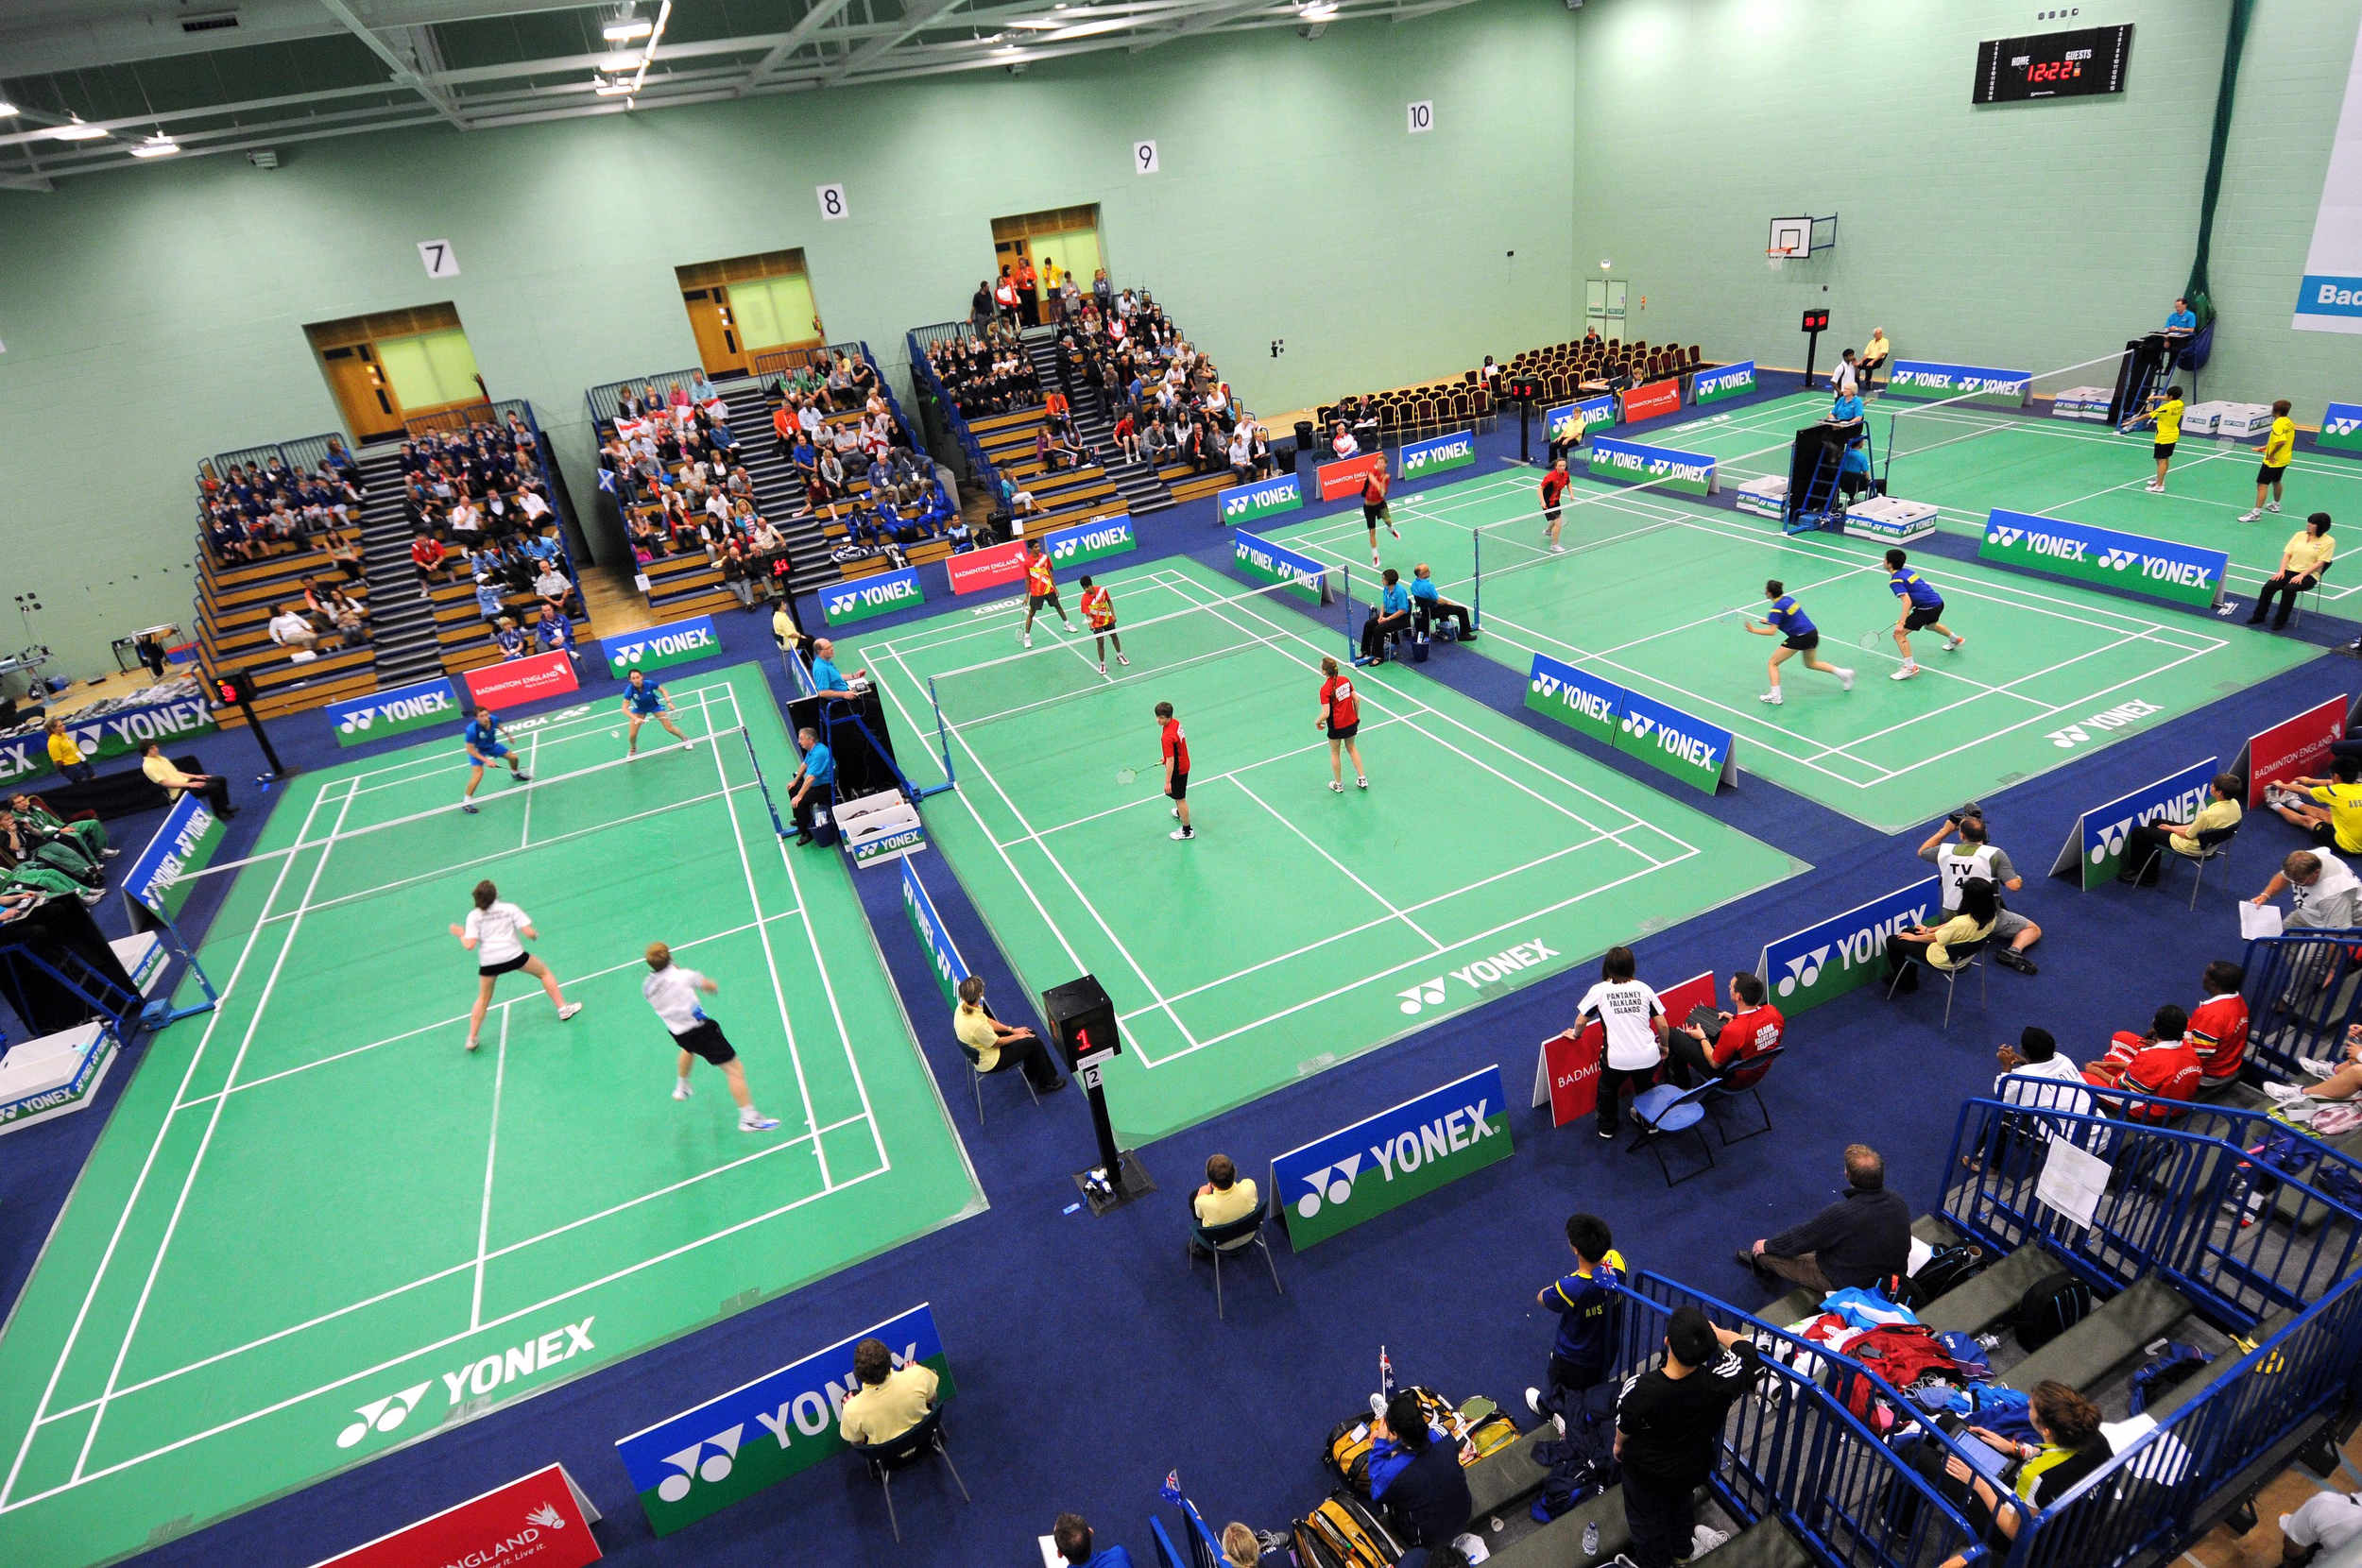 The Badminton arena in the Isle of Man National Sports Centre on Day one of the 2011 Commonwealth Youth Games